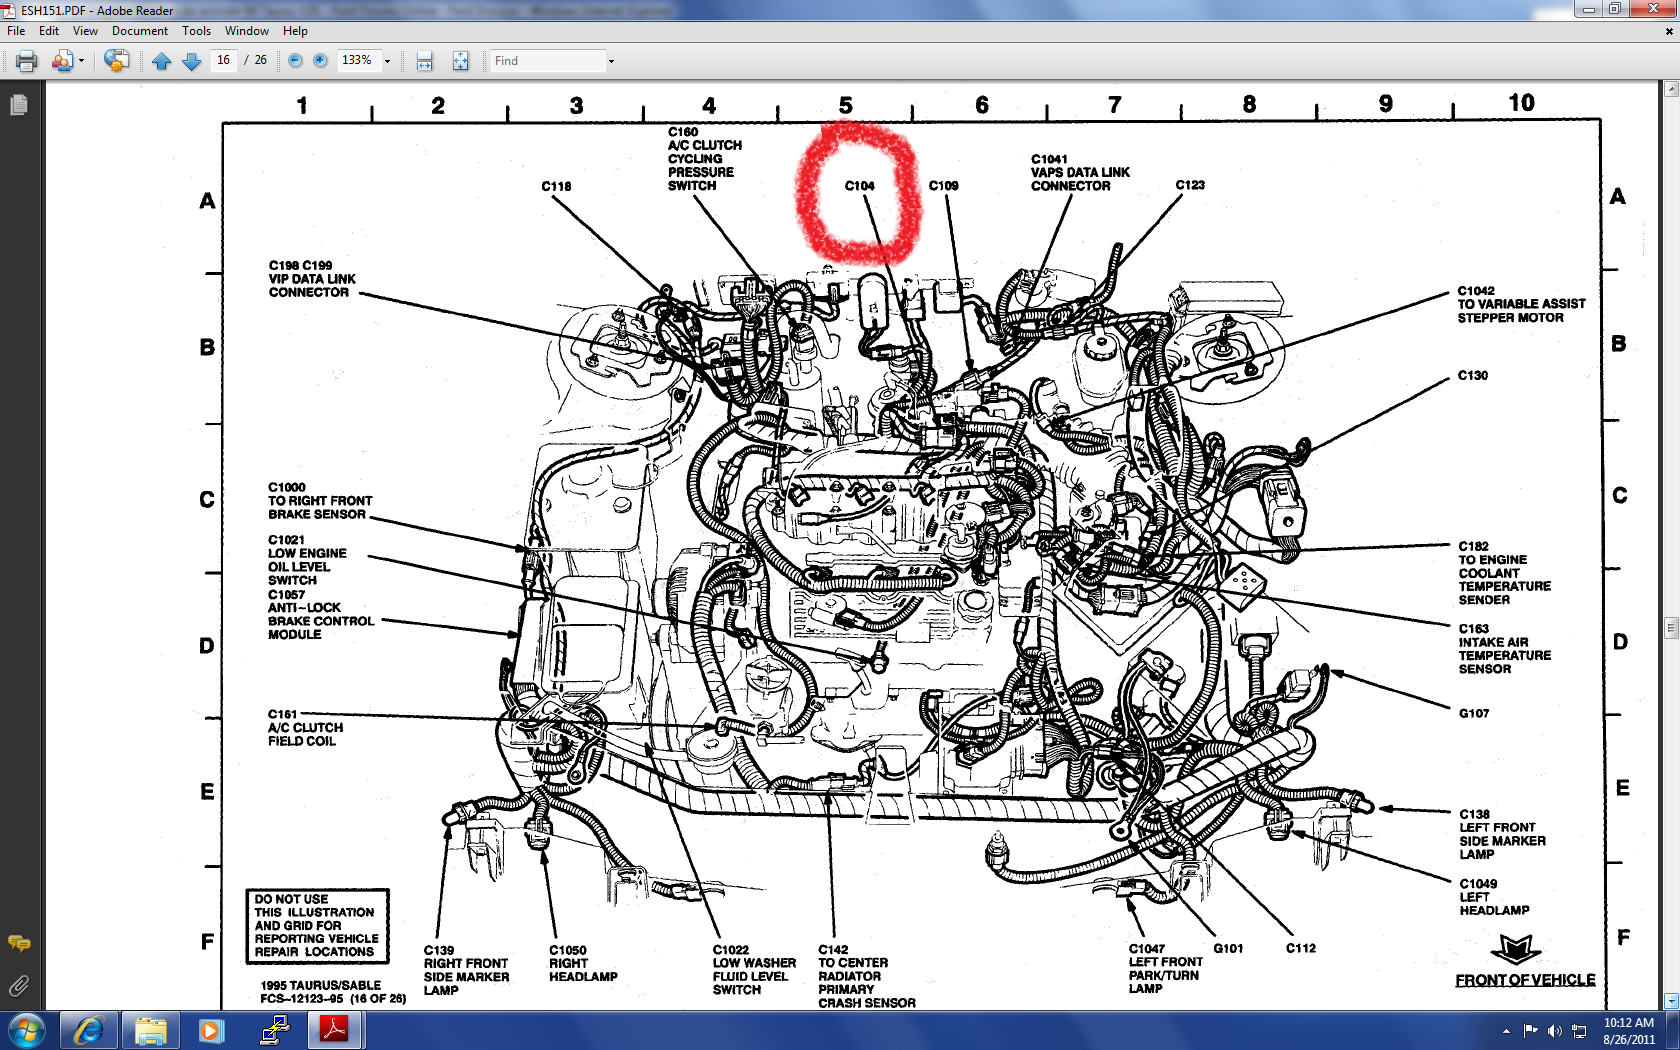 radiator cooling fan fails to auto activate 94 taurus 3 0l cooling fan wiring diagram 95 mustang at fashall.co